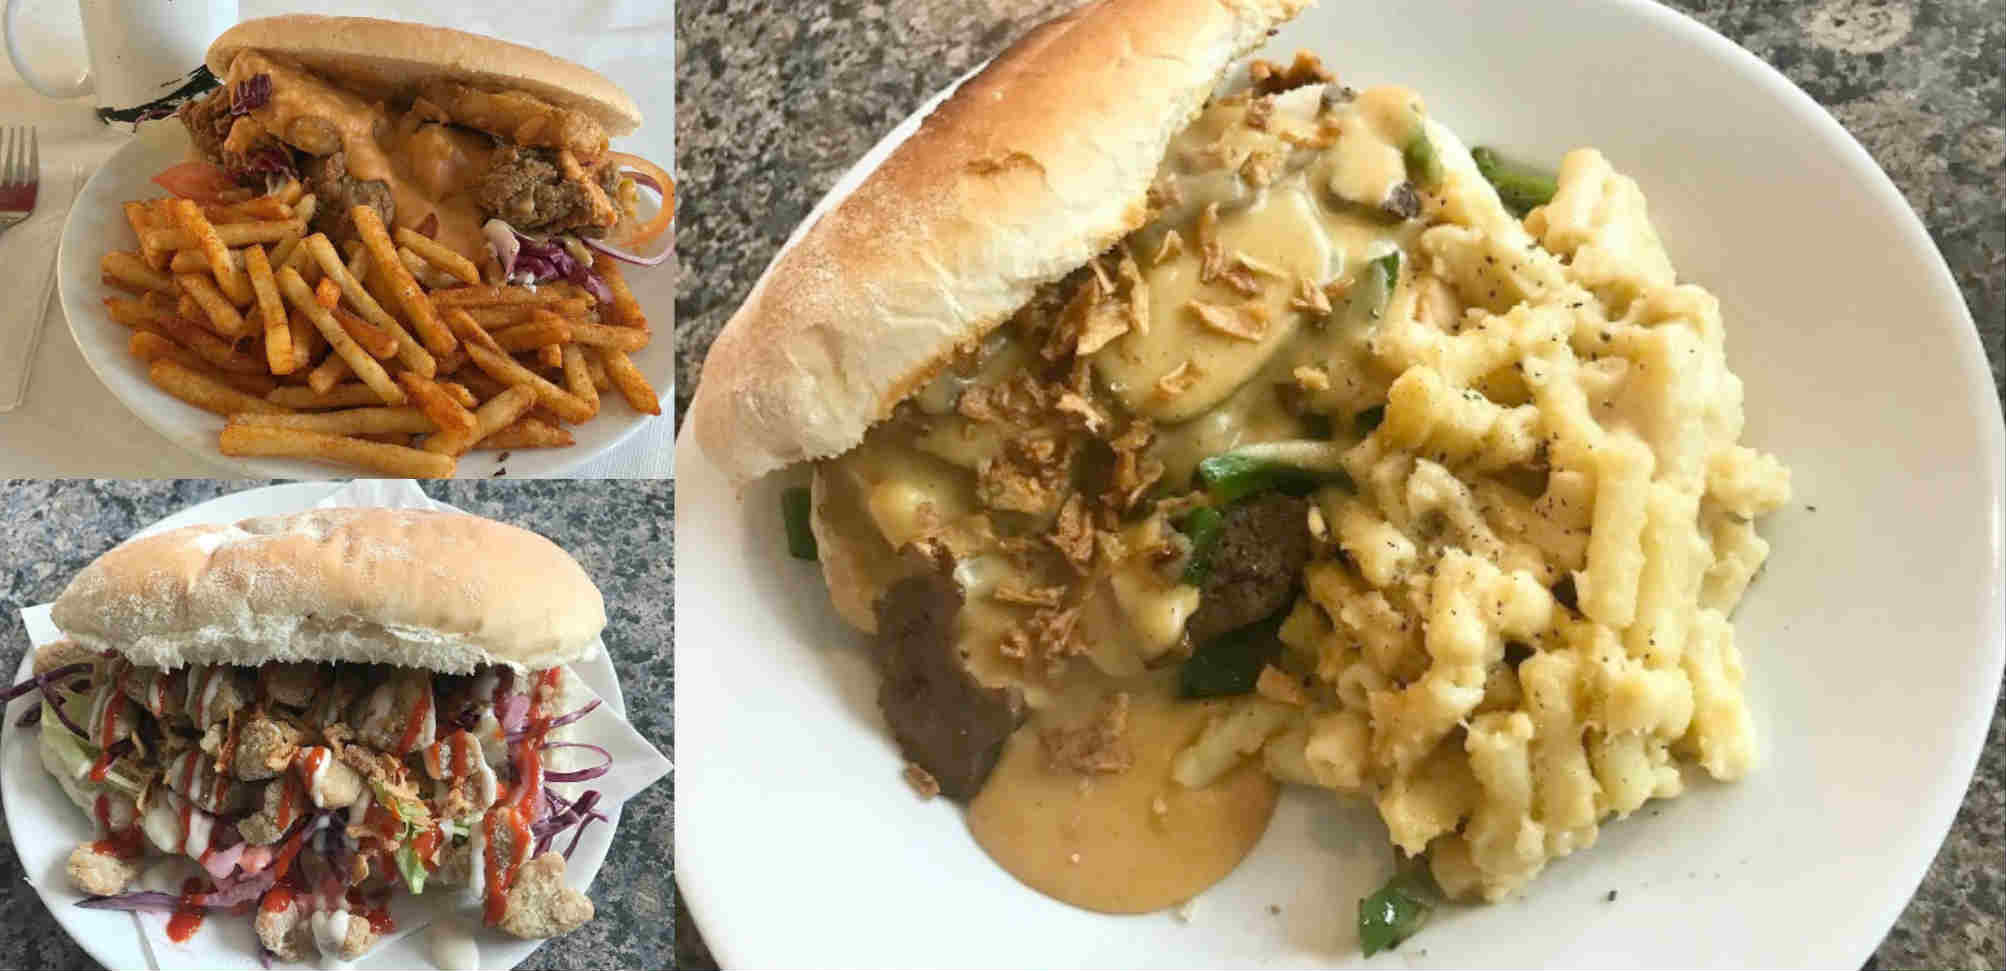 Decadent vegan food in Leeds